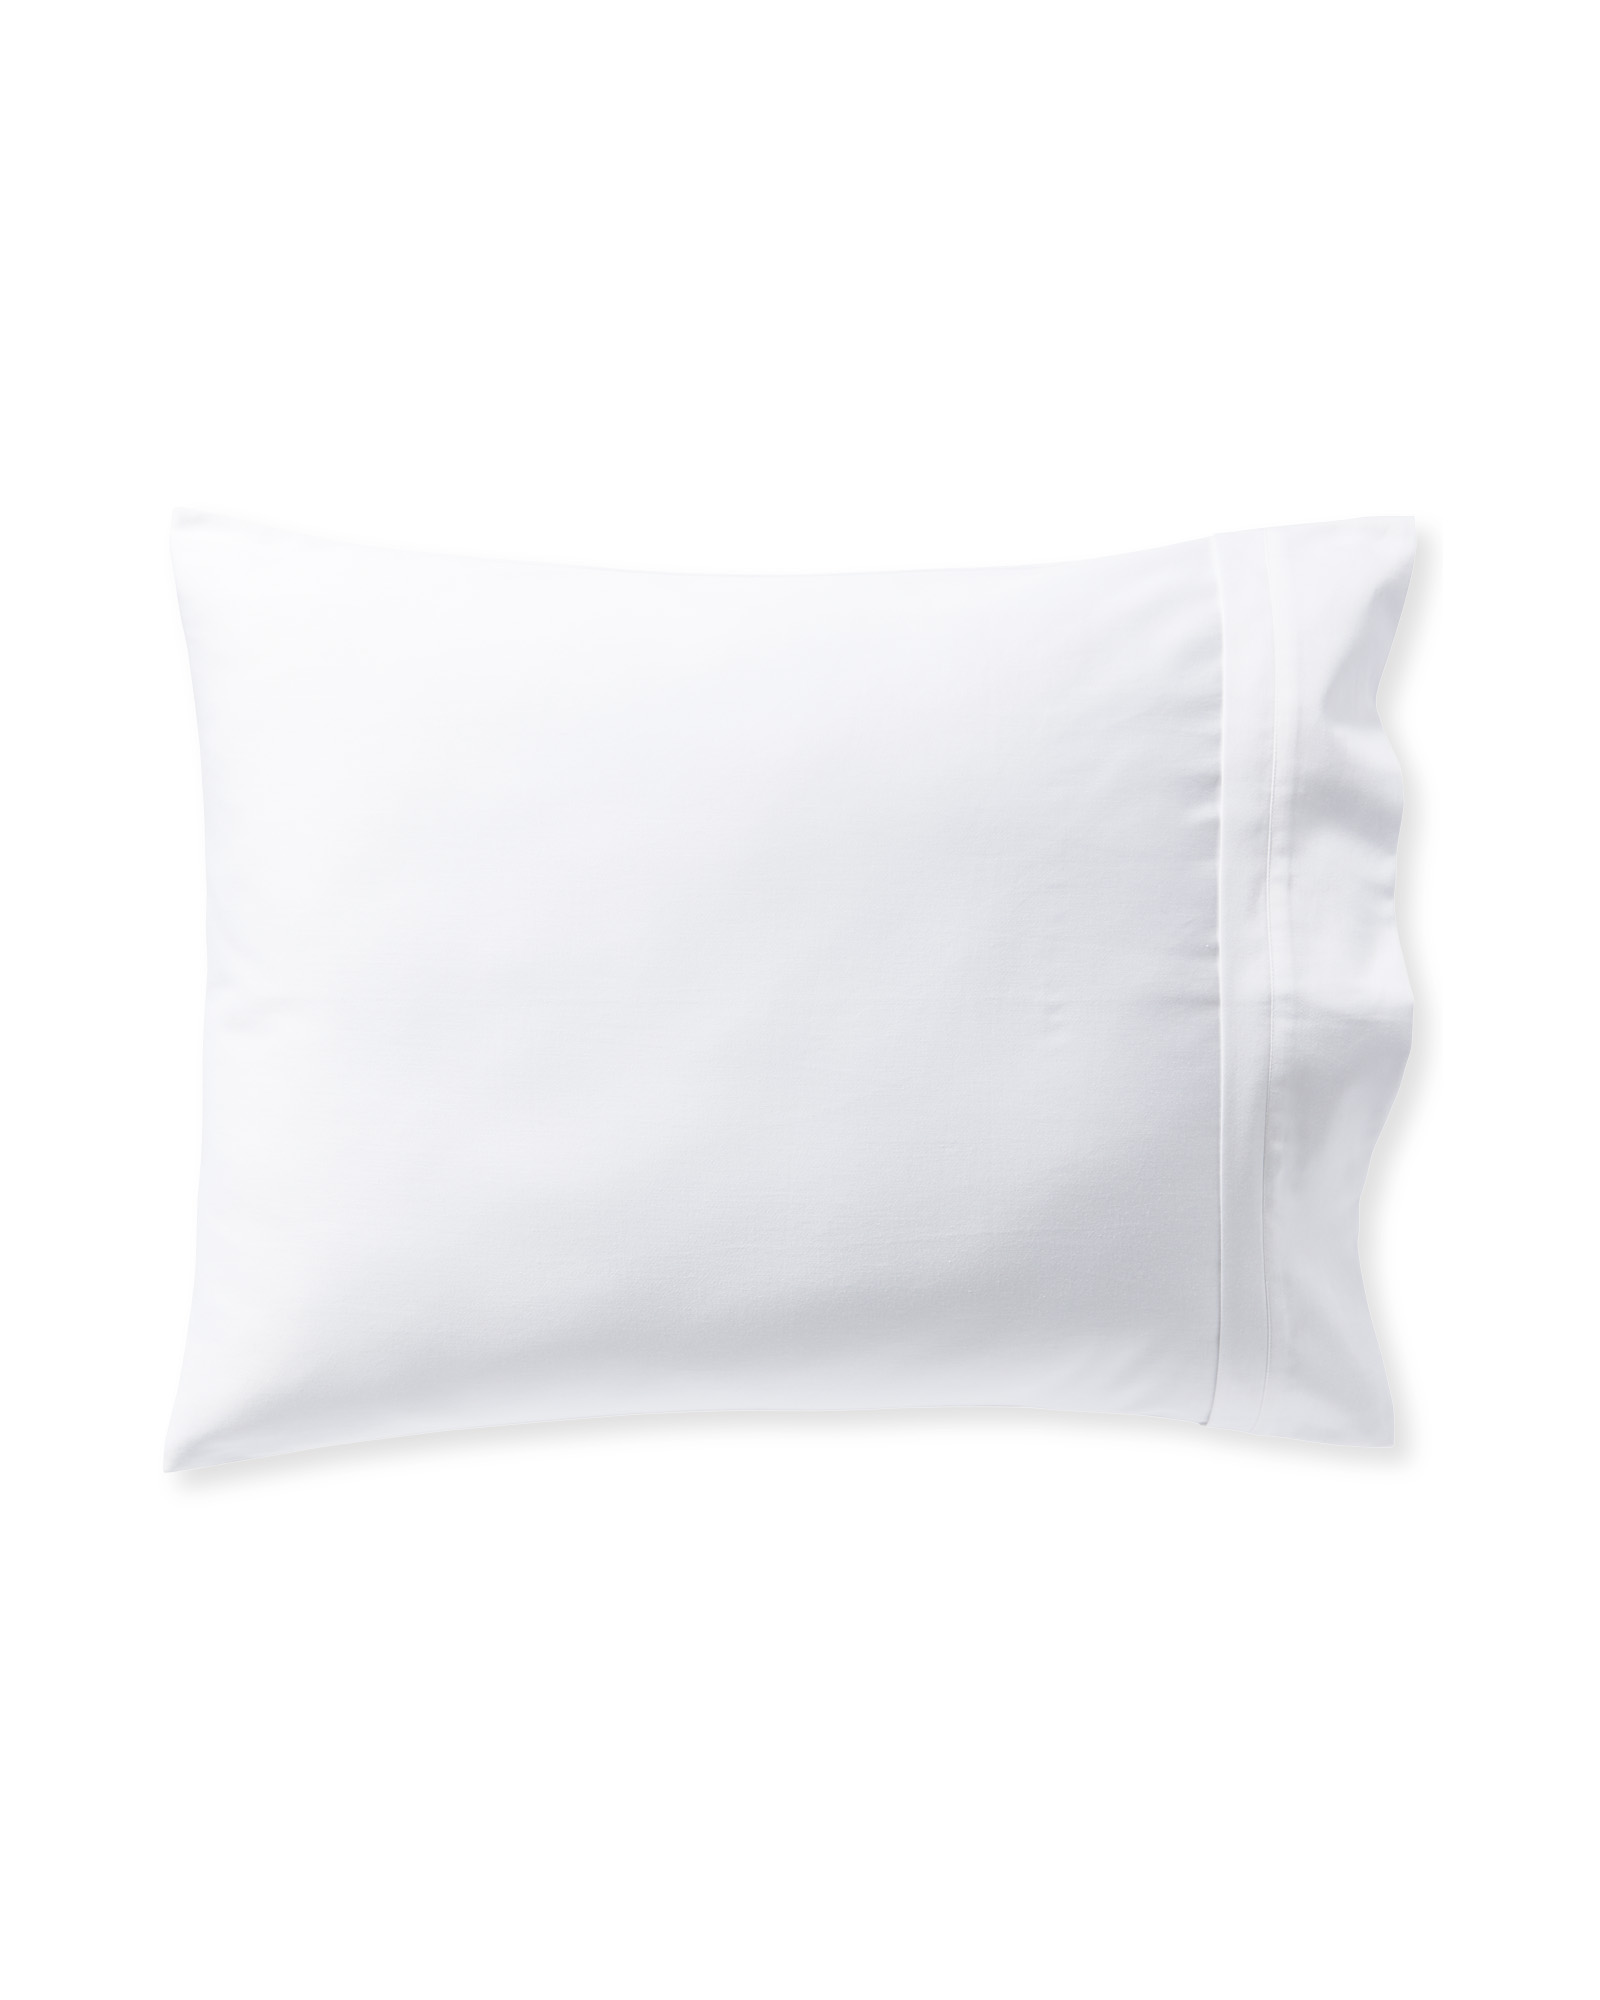 Border Frame Pillowcases (Set of 2), White